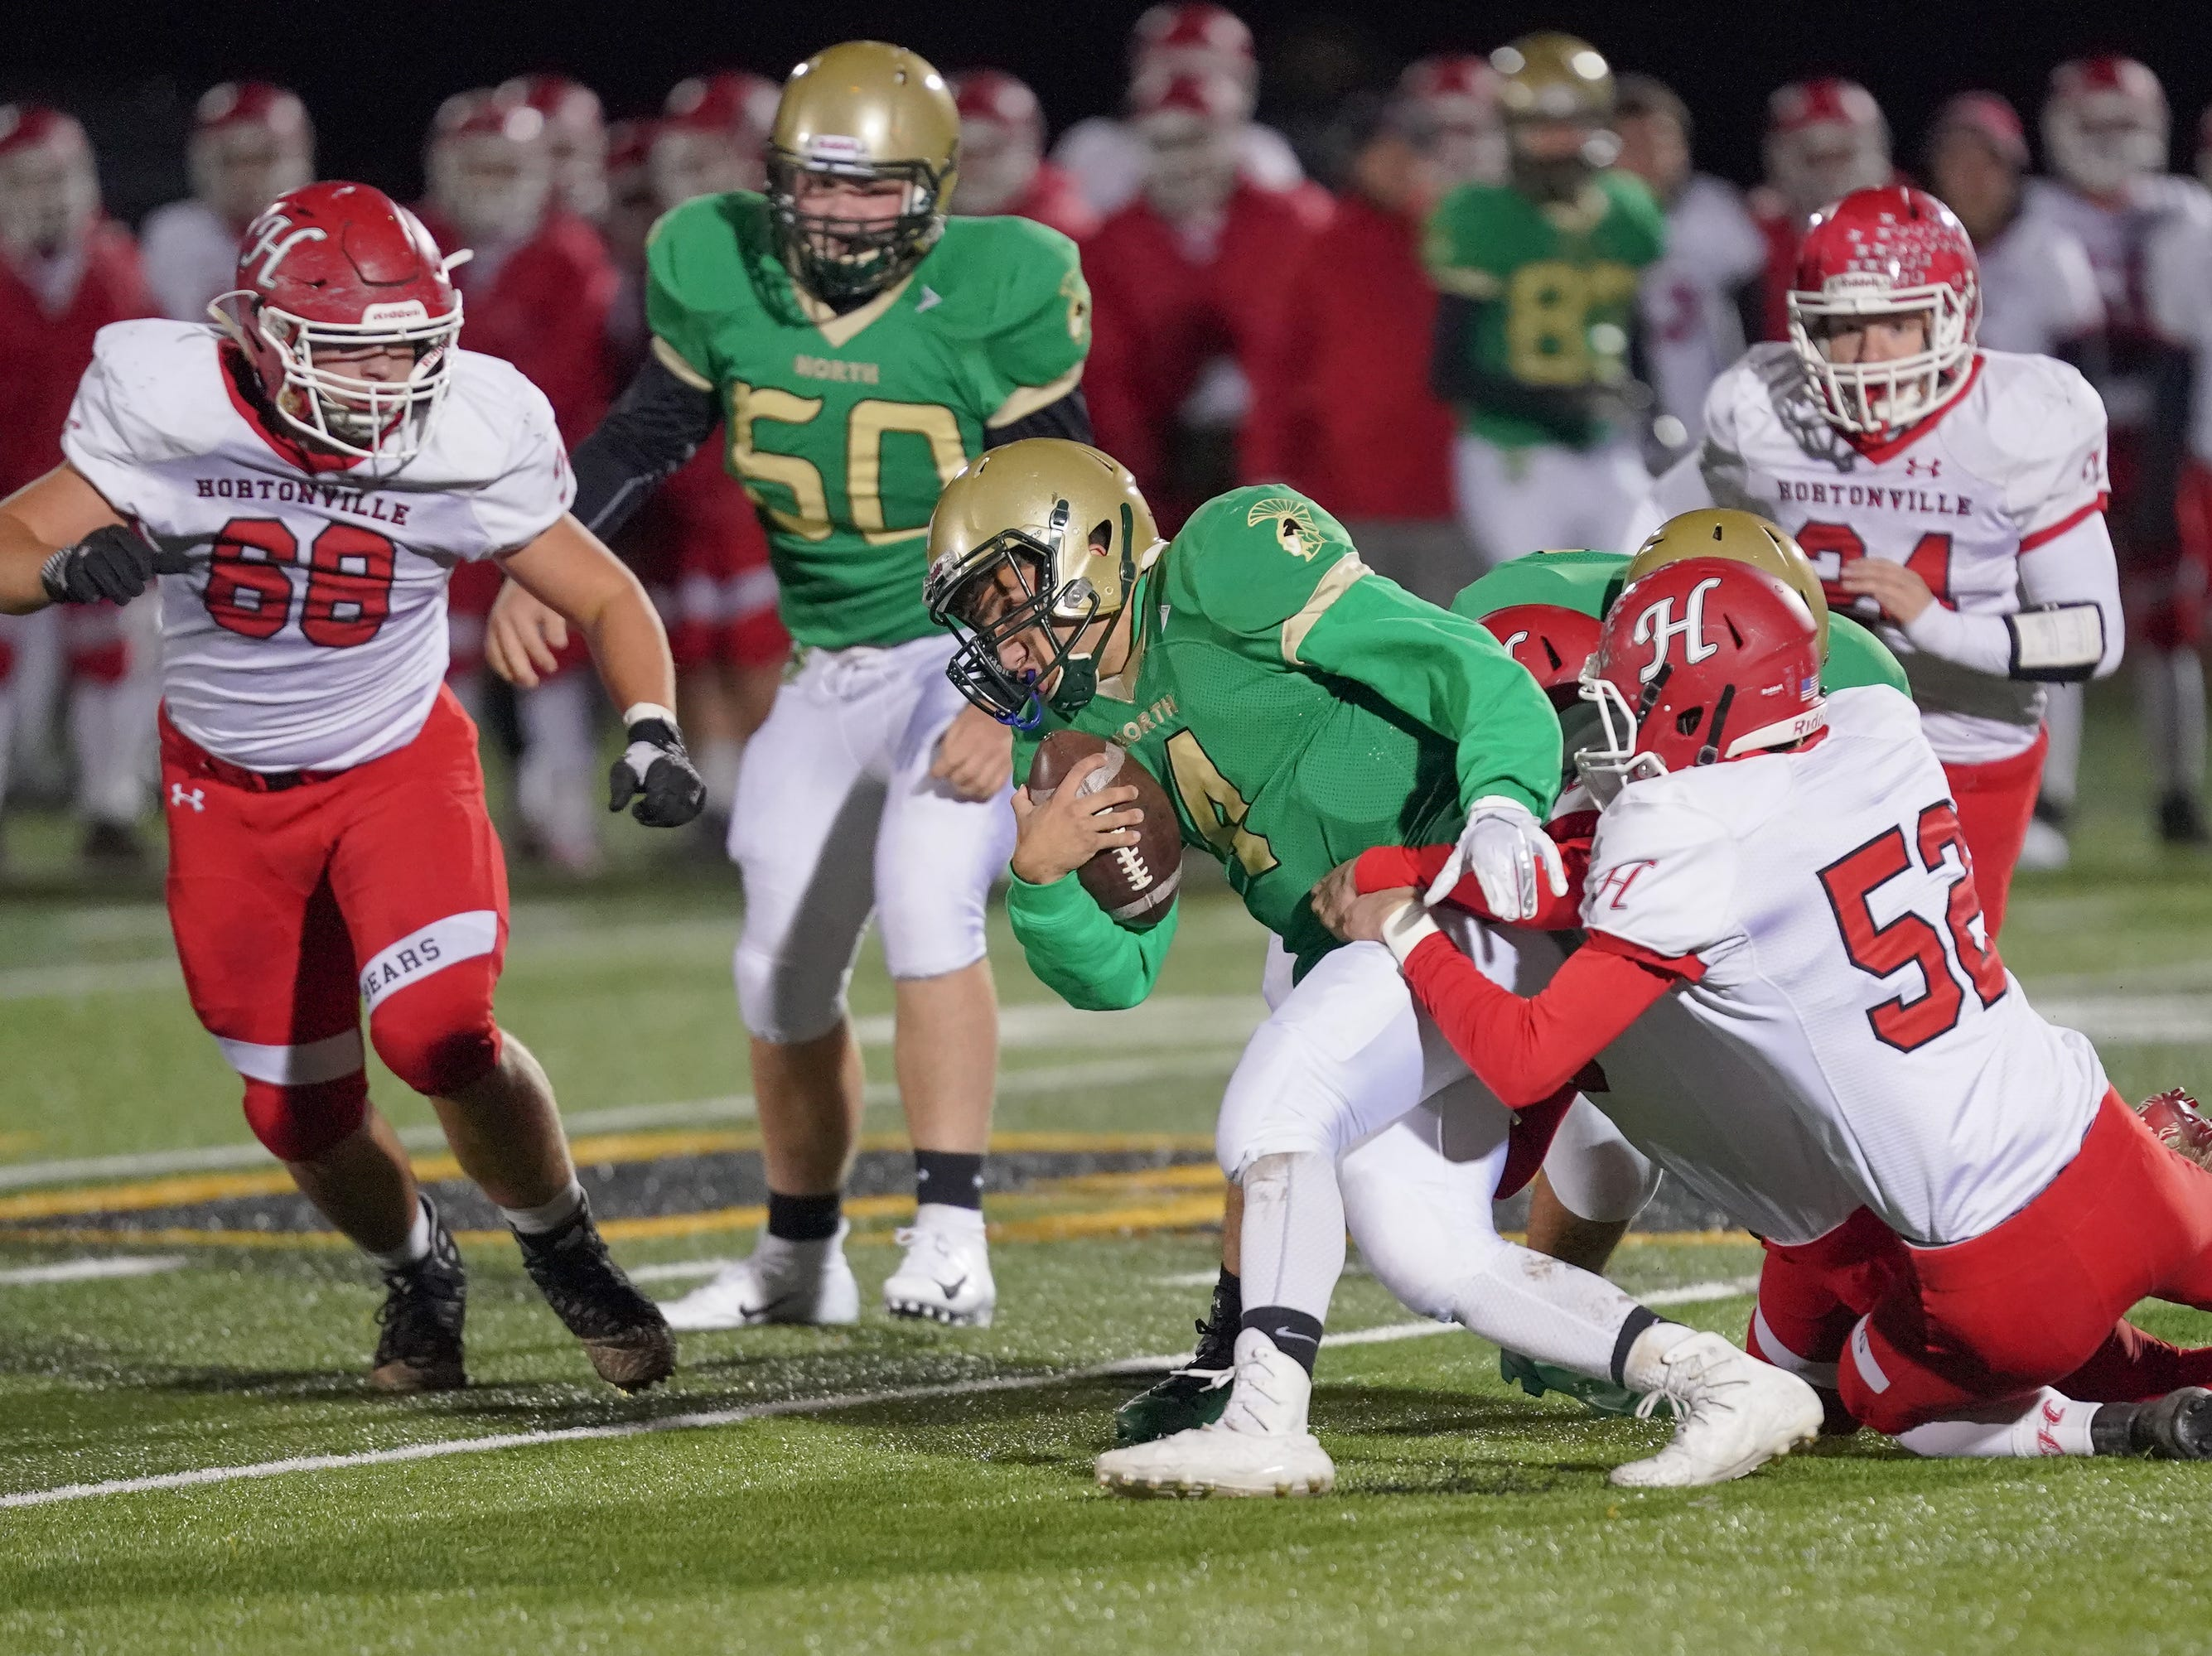 Oshkosh North quarterback Alex Garland (4) struggles for a gain in the fourth quarter. The Oshkosh North Spartans hosted the Hortonville Polar Bears in an FVA-South conference matchup Friday evening, October 12, 2018 at J. J. Keller Field at Titan Stadium.